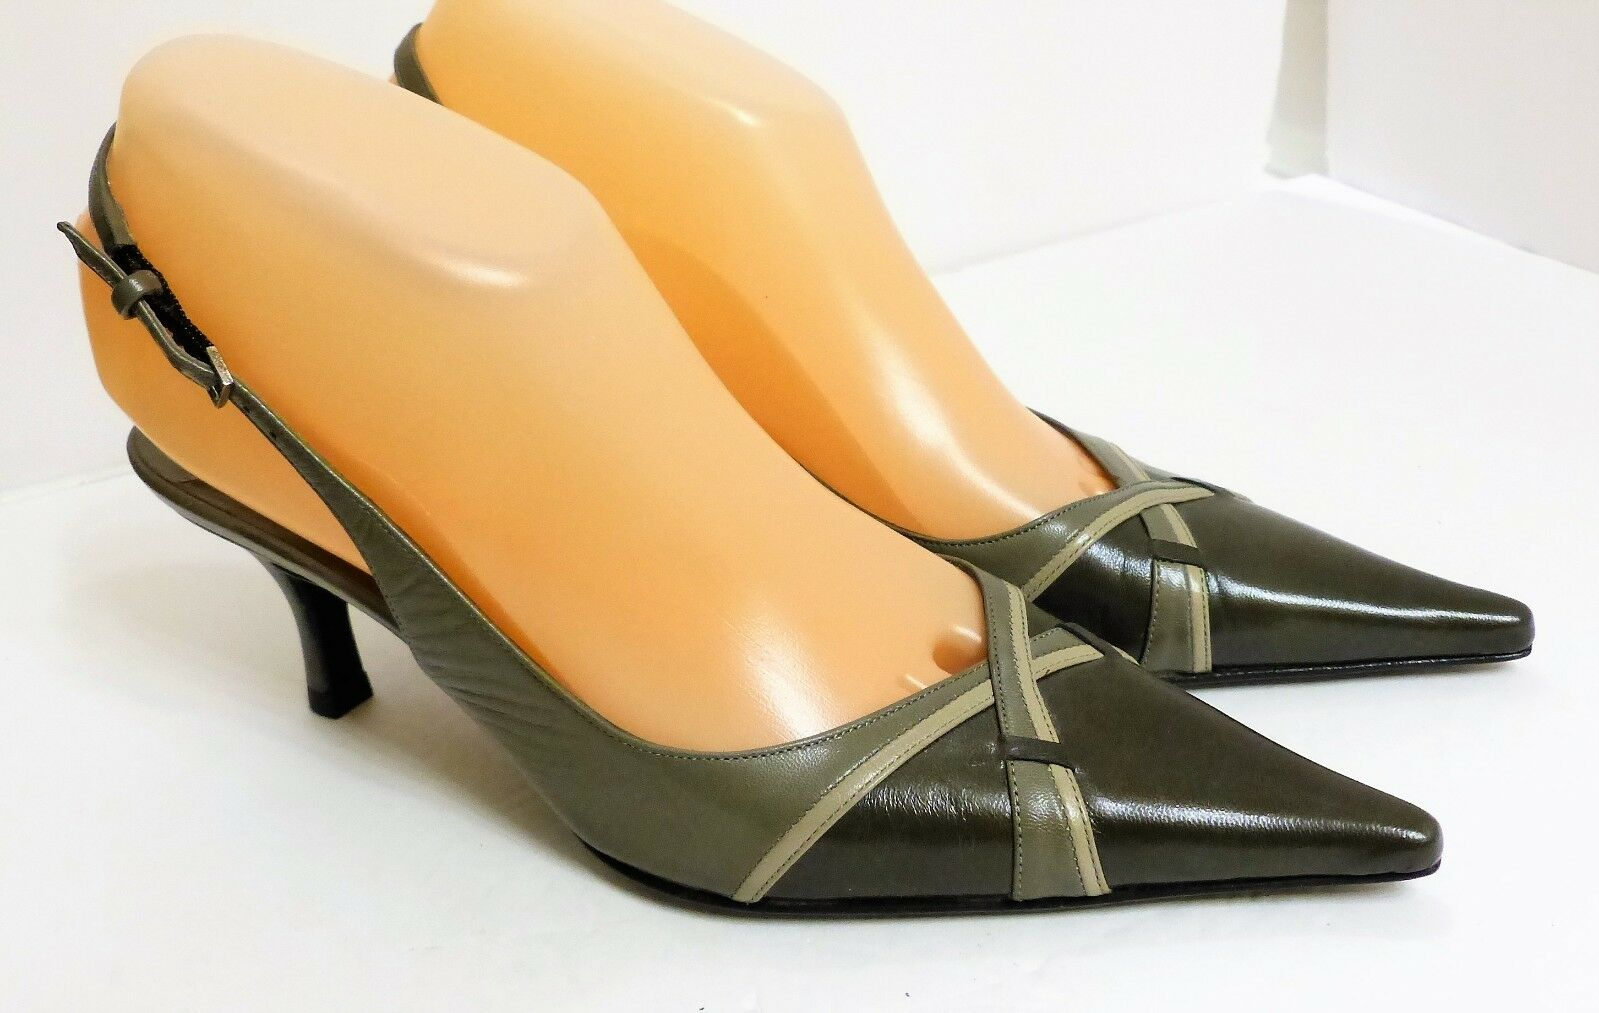 New Display Samples Bruno Magli Women's 6 1 2 B Green Leather Slingbacks   375